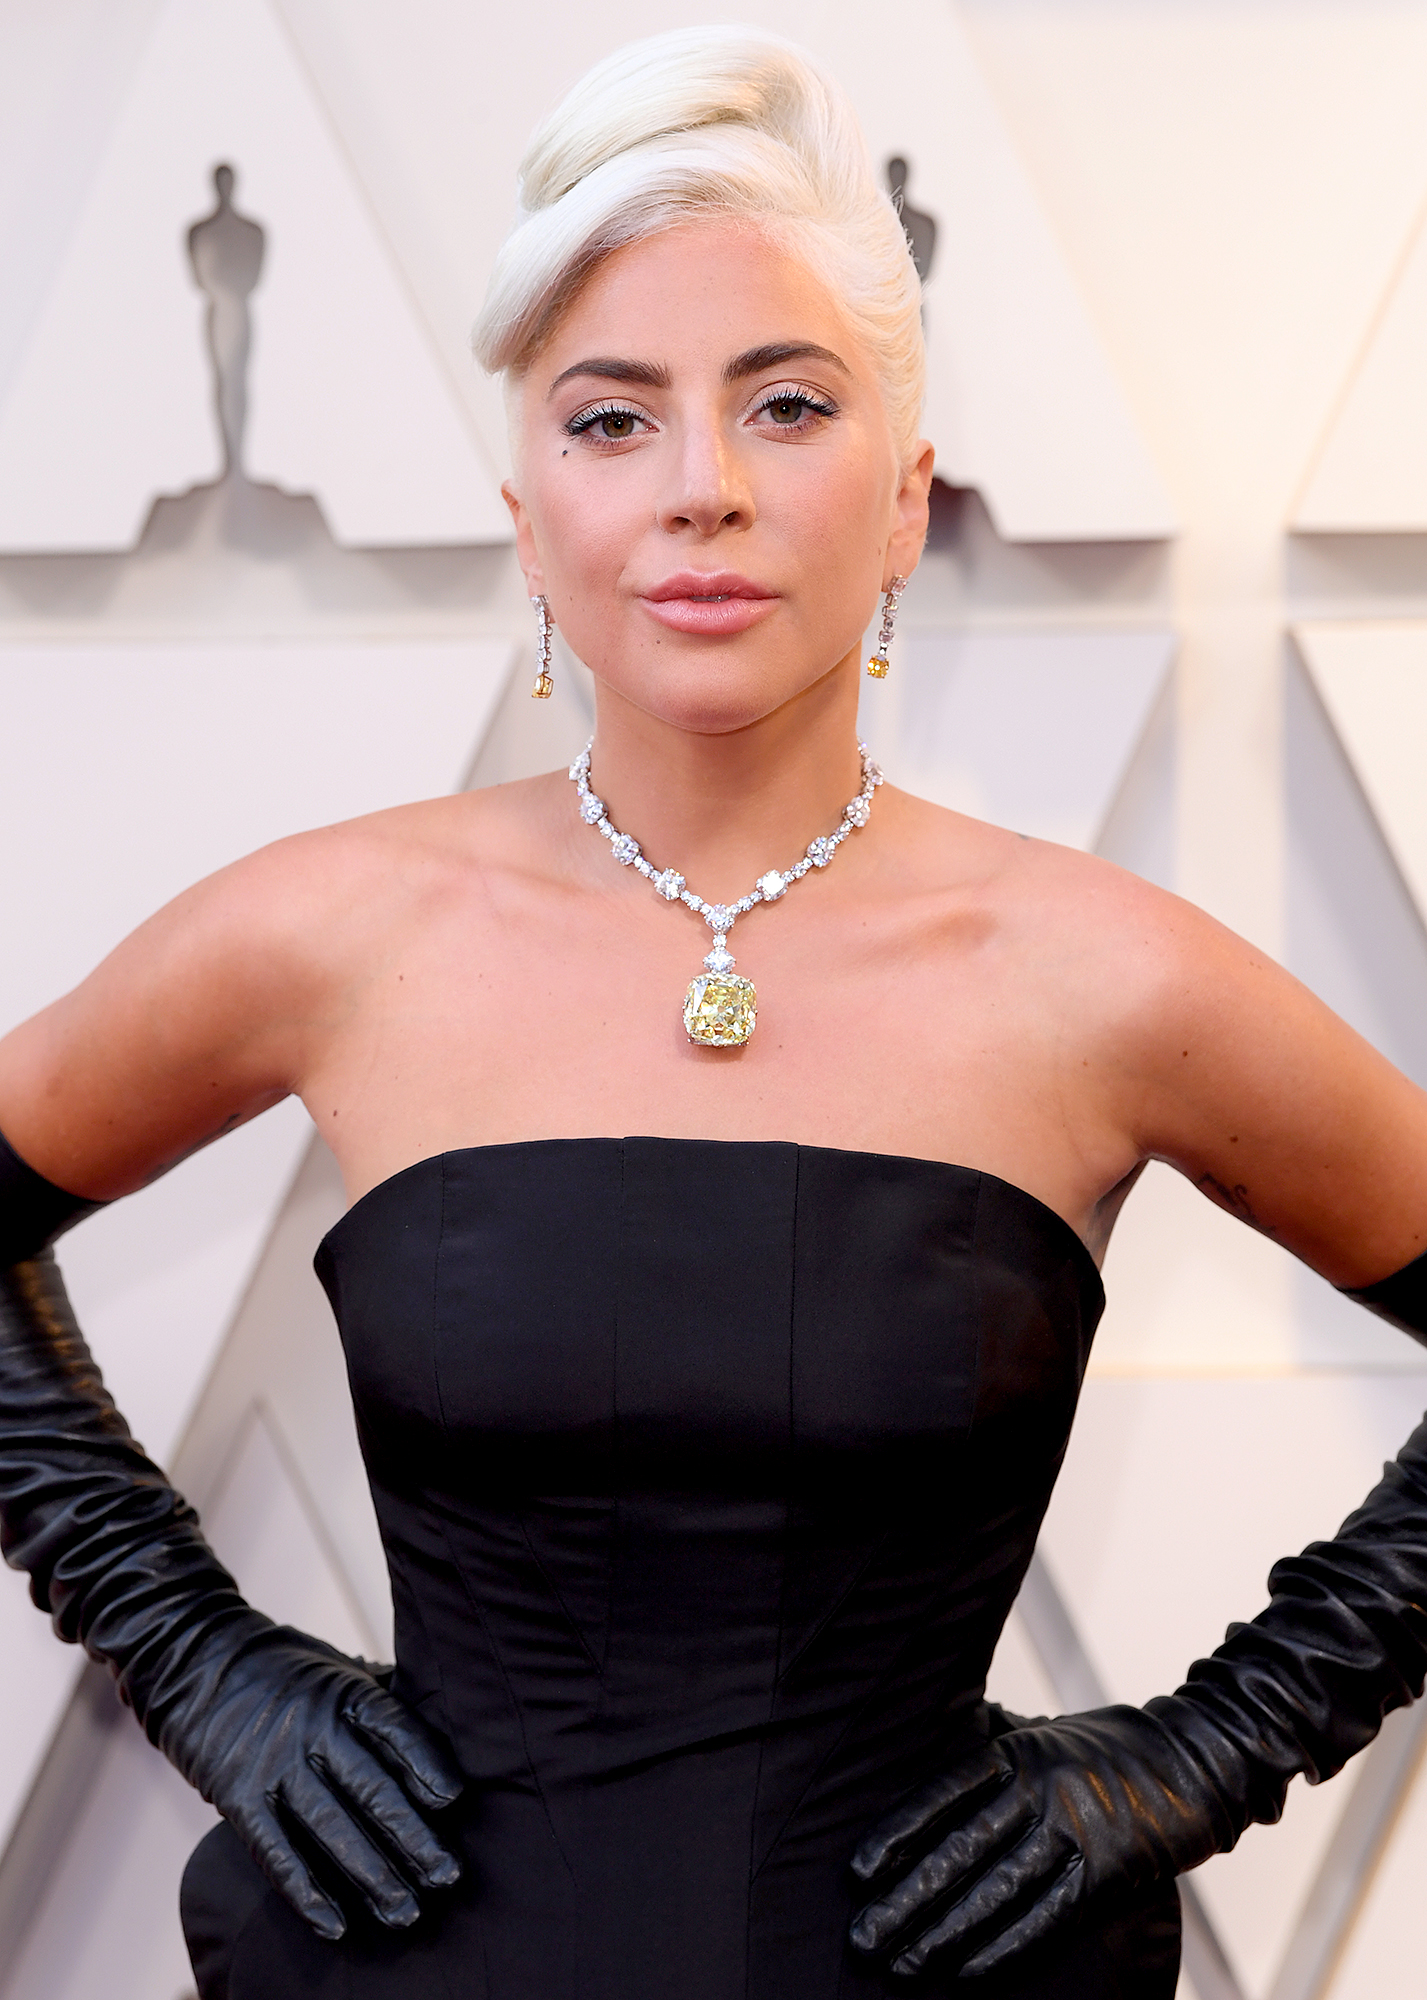 Lady Gaga Details How She Quit Smoking 'Cold Turkey'